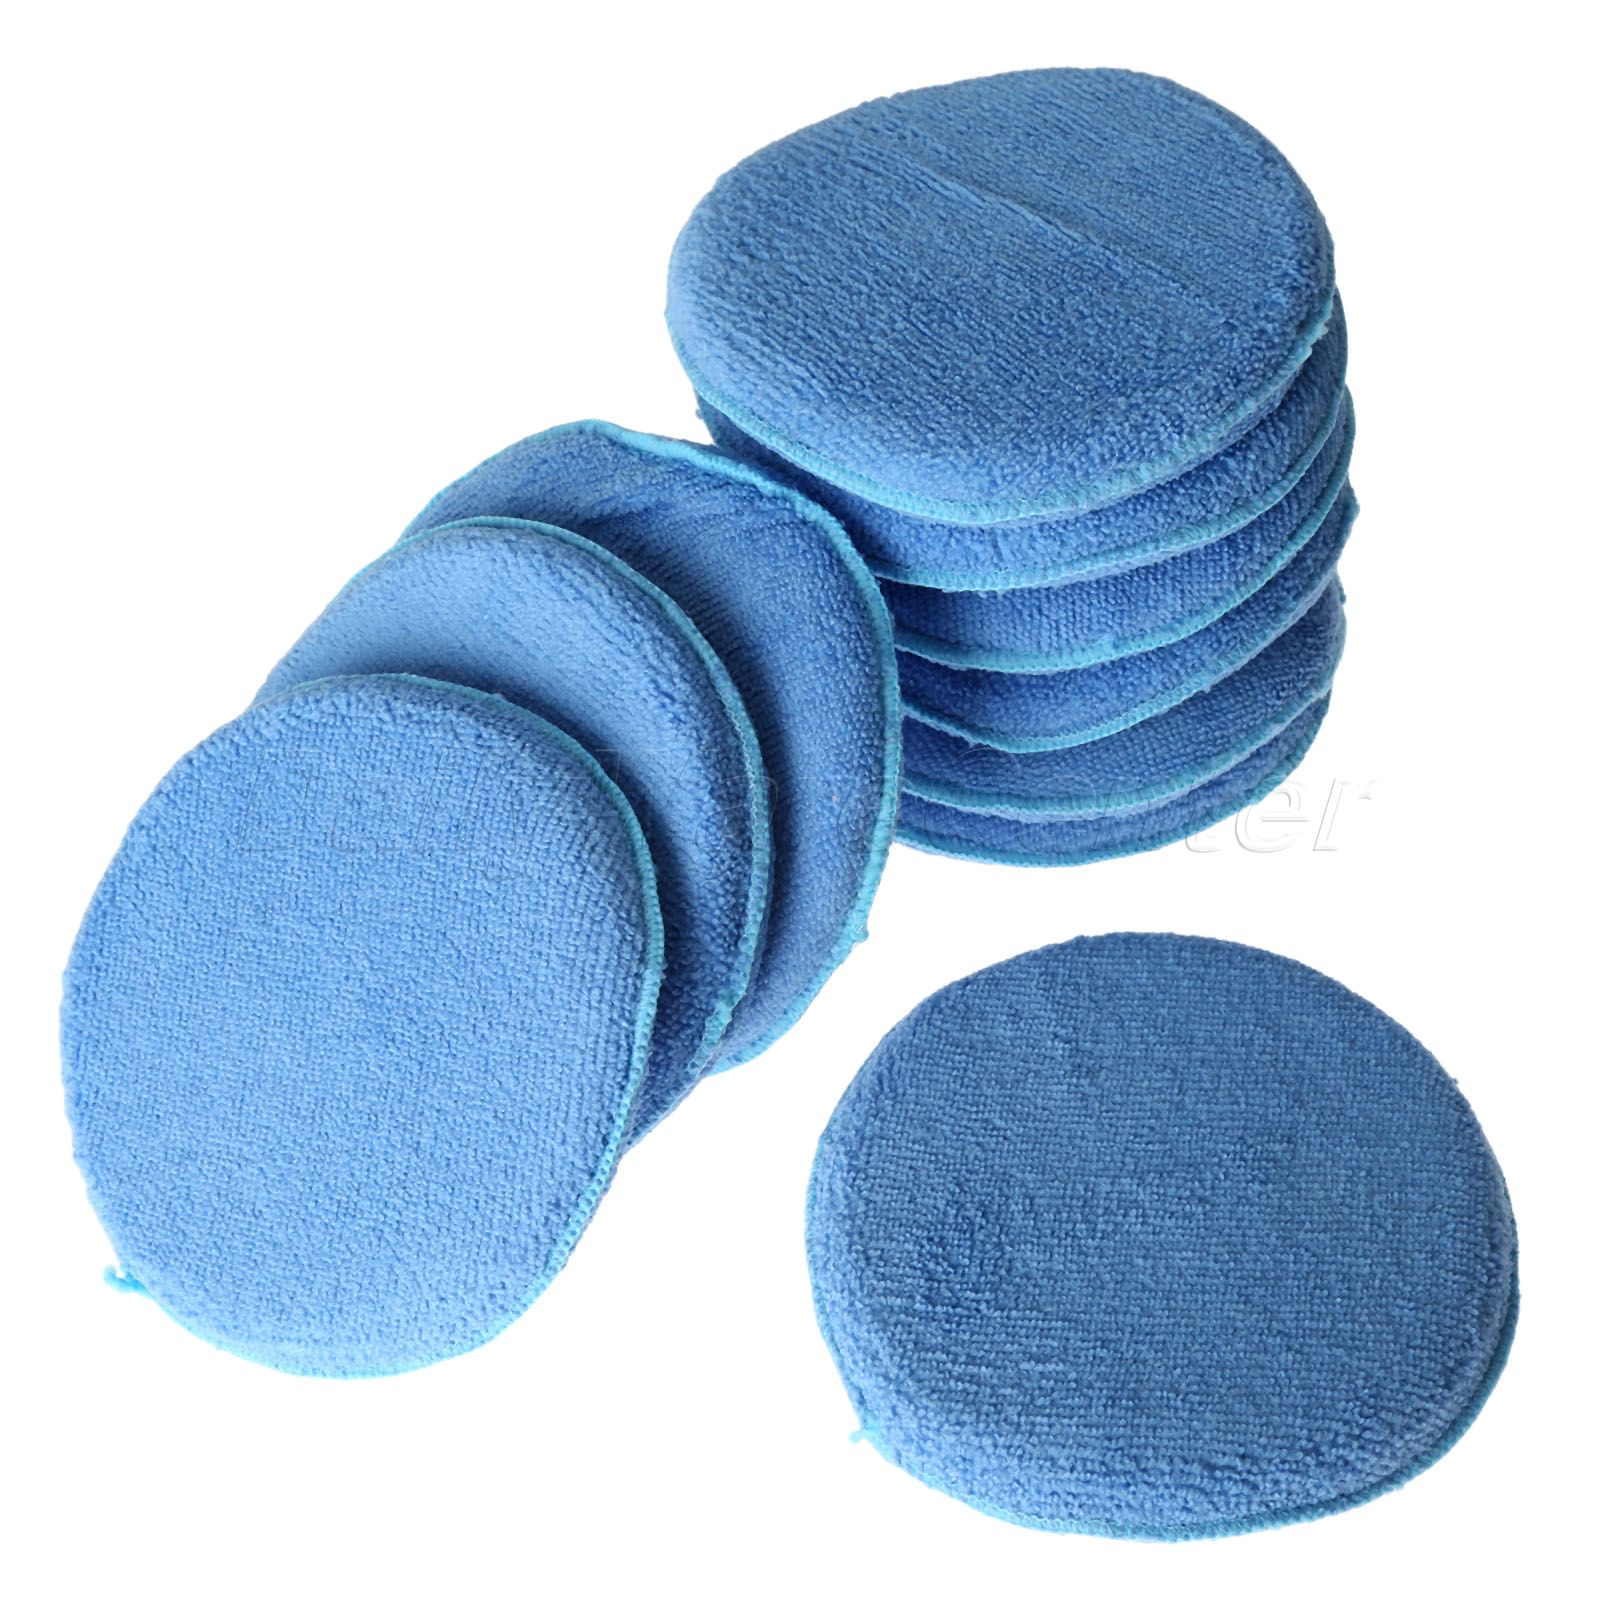 New 10X 6inch Car Waxing Polish Soft Microfiber Foam Sponge Applicator Pads Auto Cleaning Detailing Pads For Car Wash Care(China (Mainland))